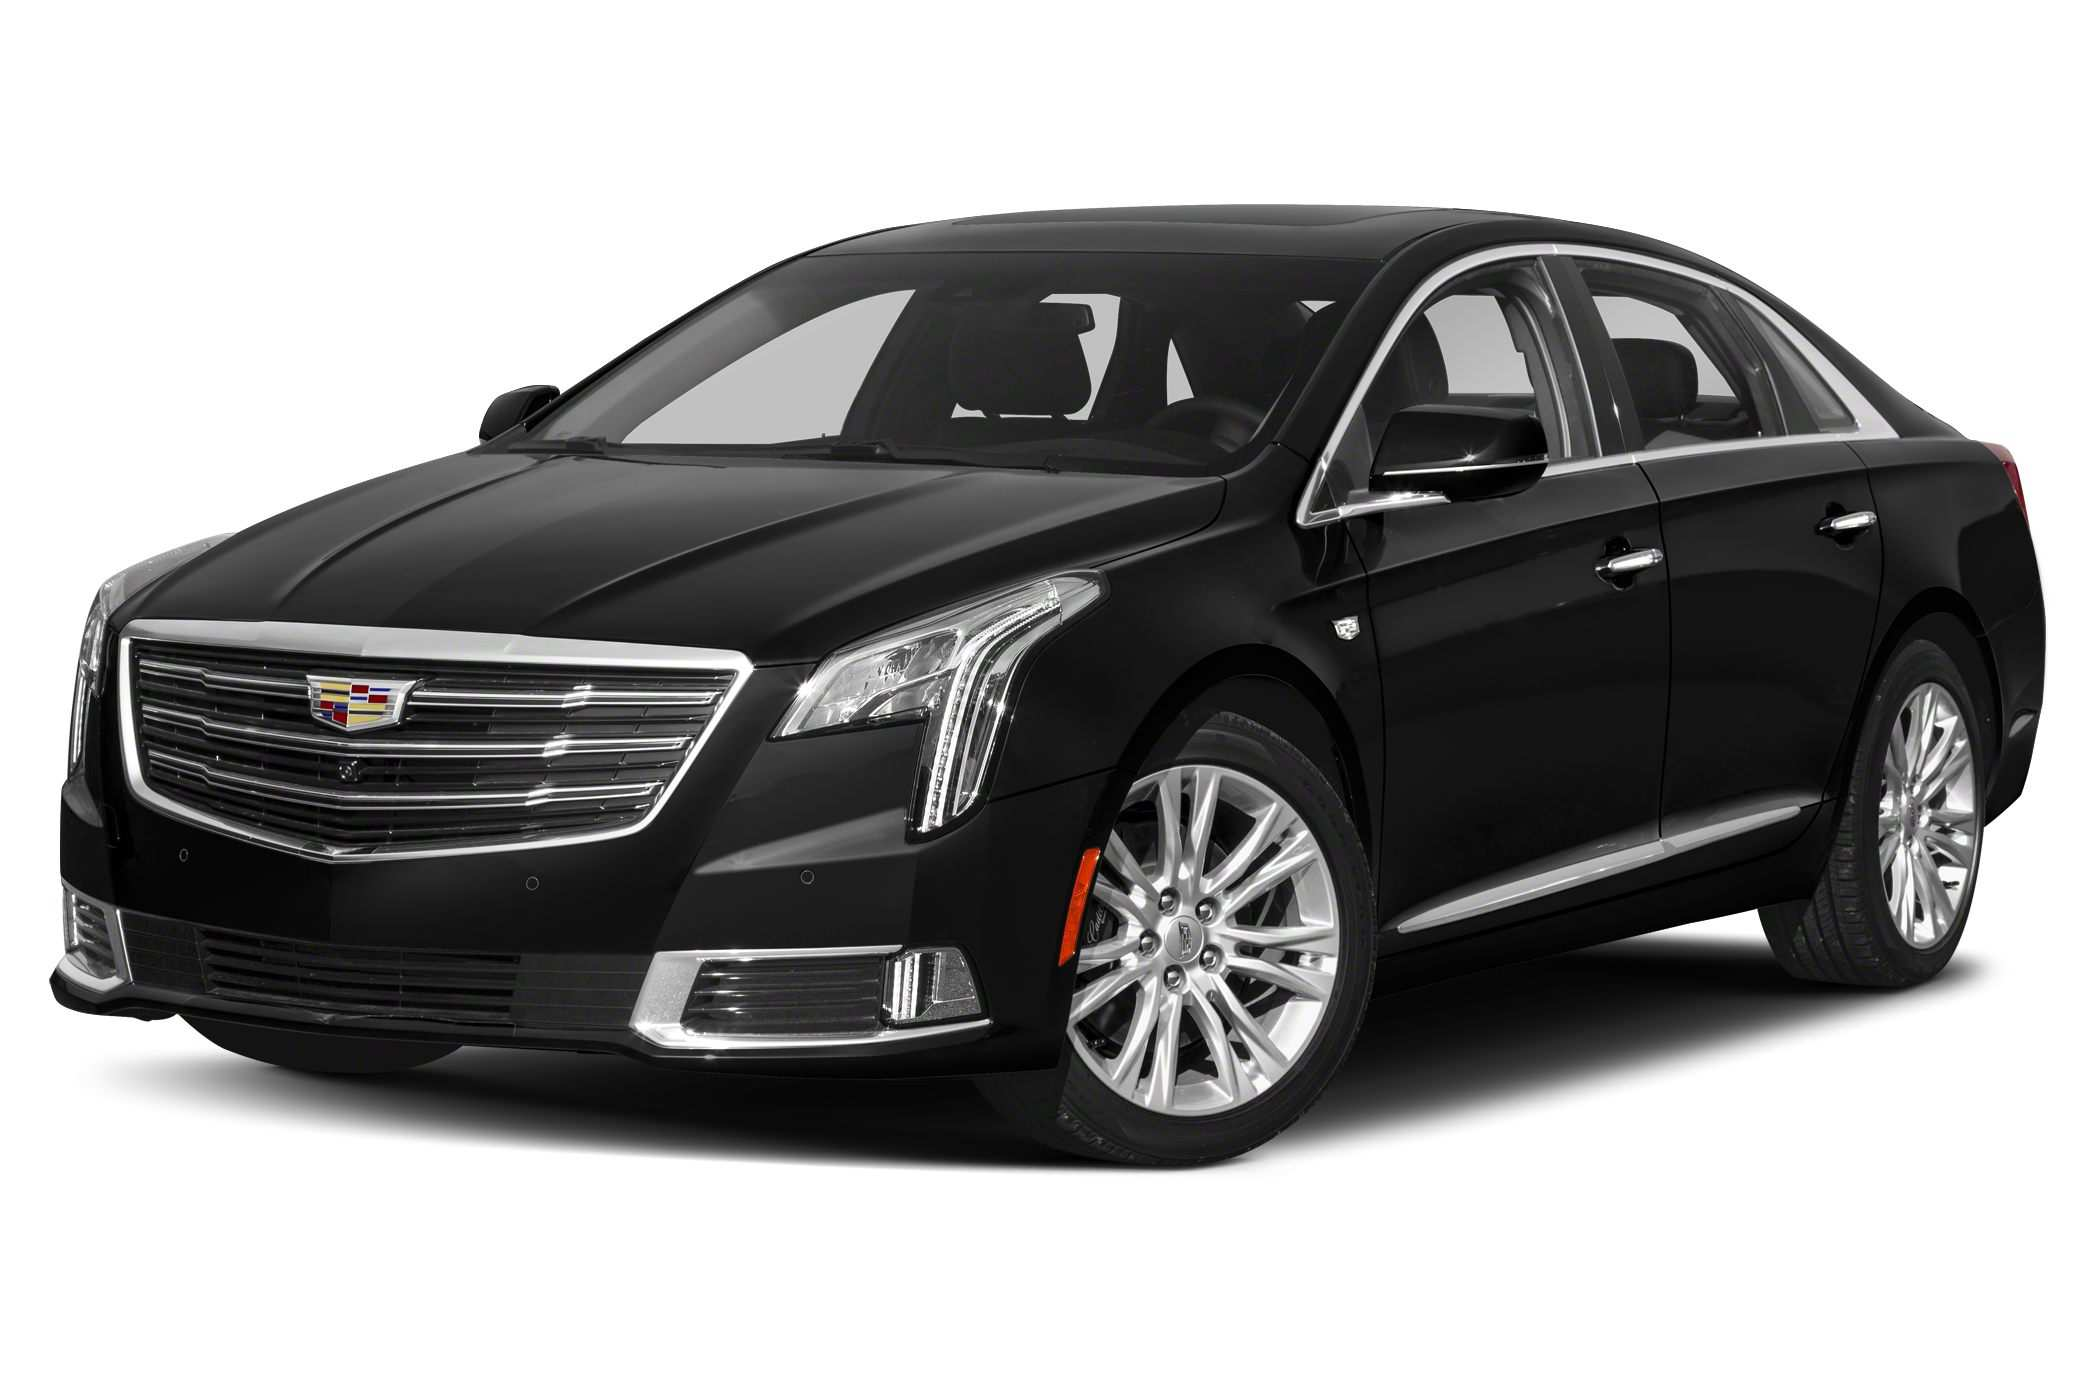 80 Best 2019 Candillac Xts Rumors